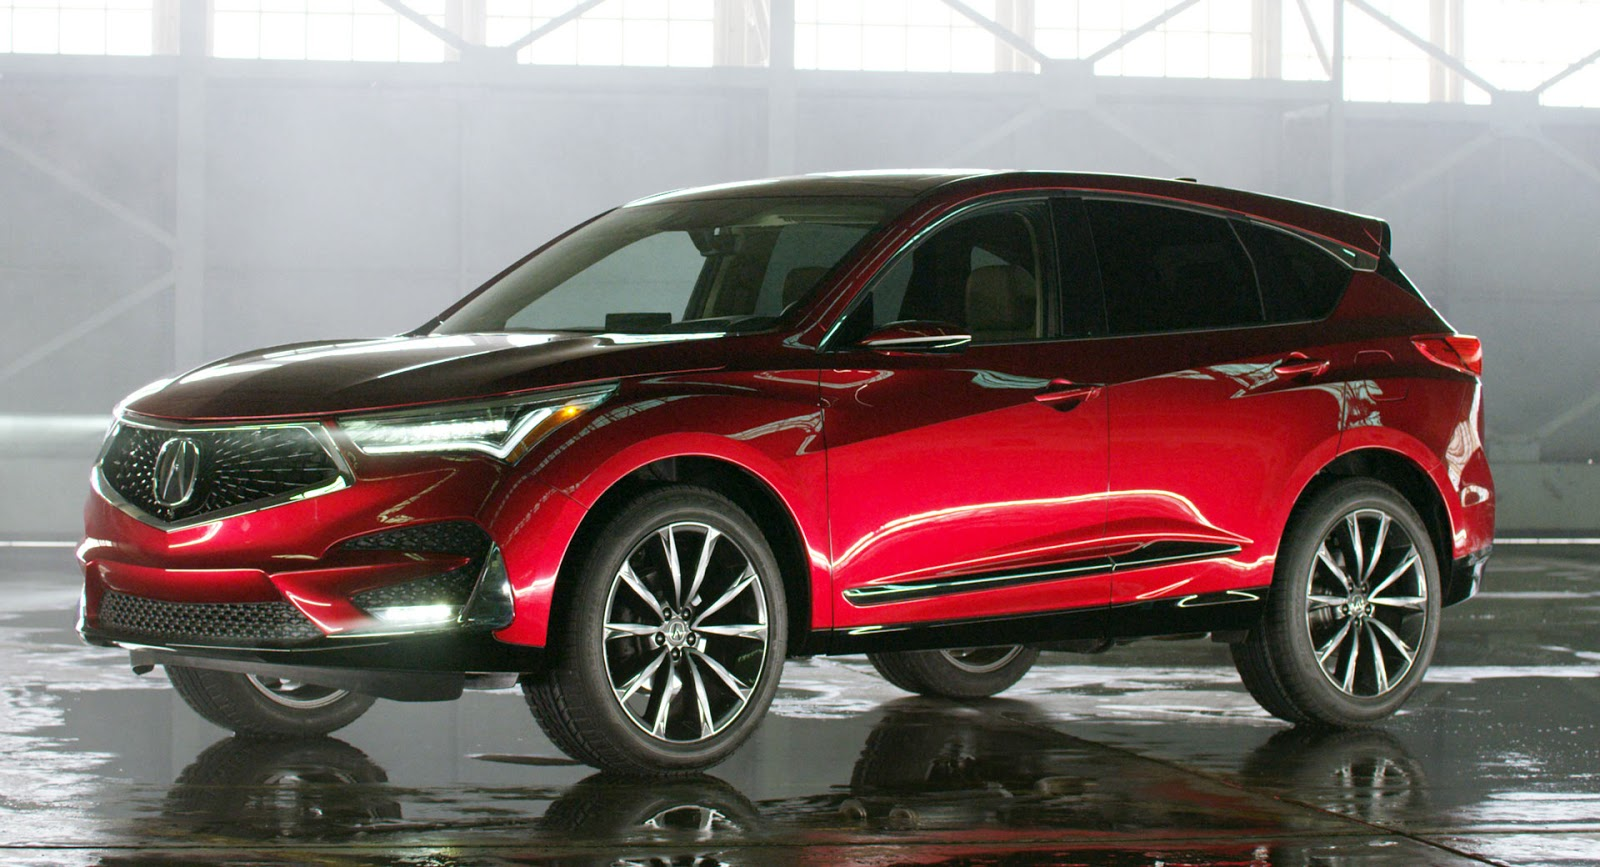 Acura RDX Prototype accurately previews production model arriving this year